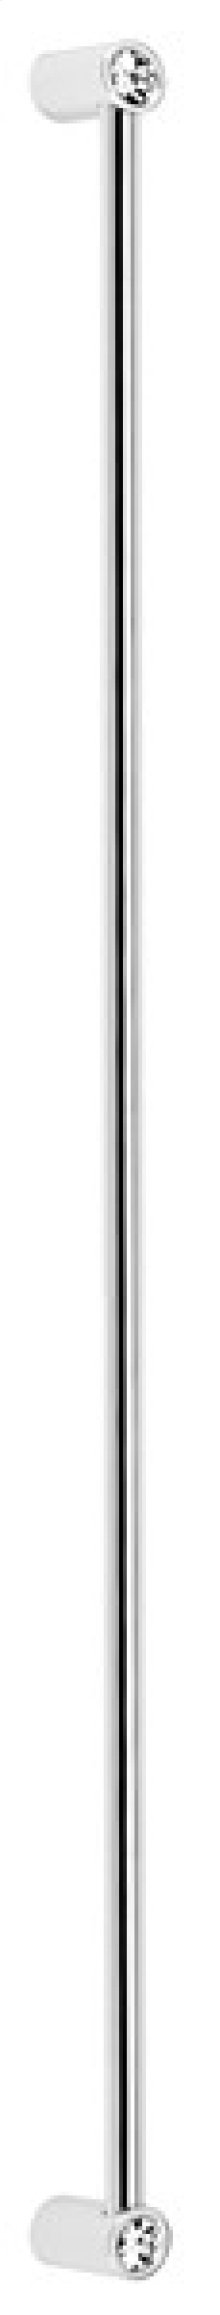 Contemporary Crystal Appliance Pull CD715-18 - Polished Chrome